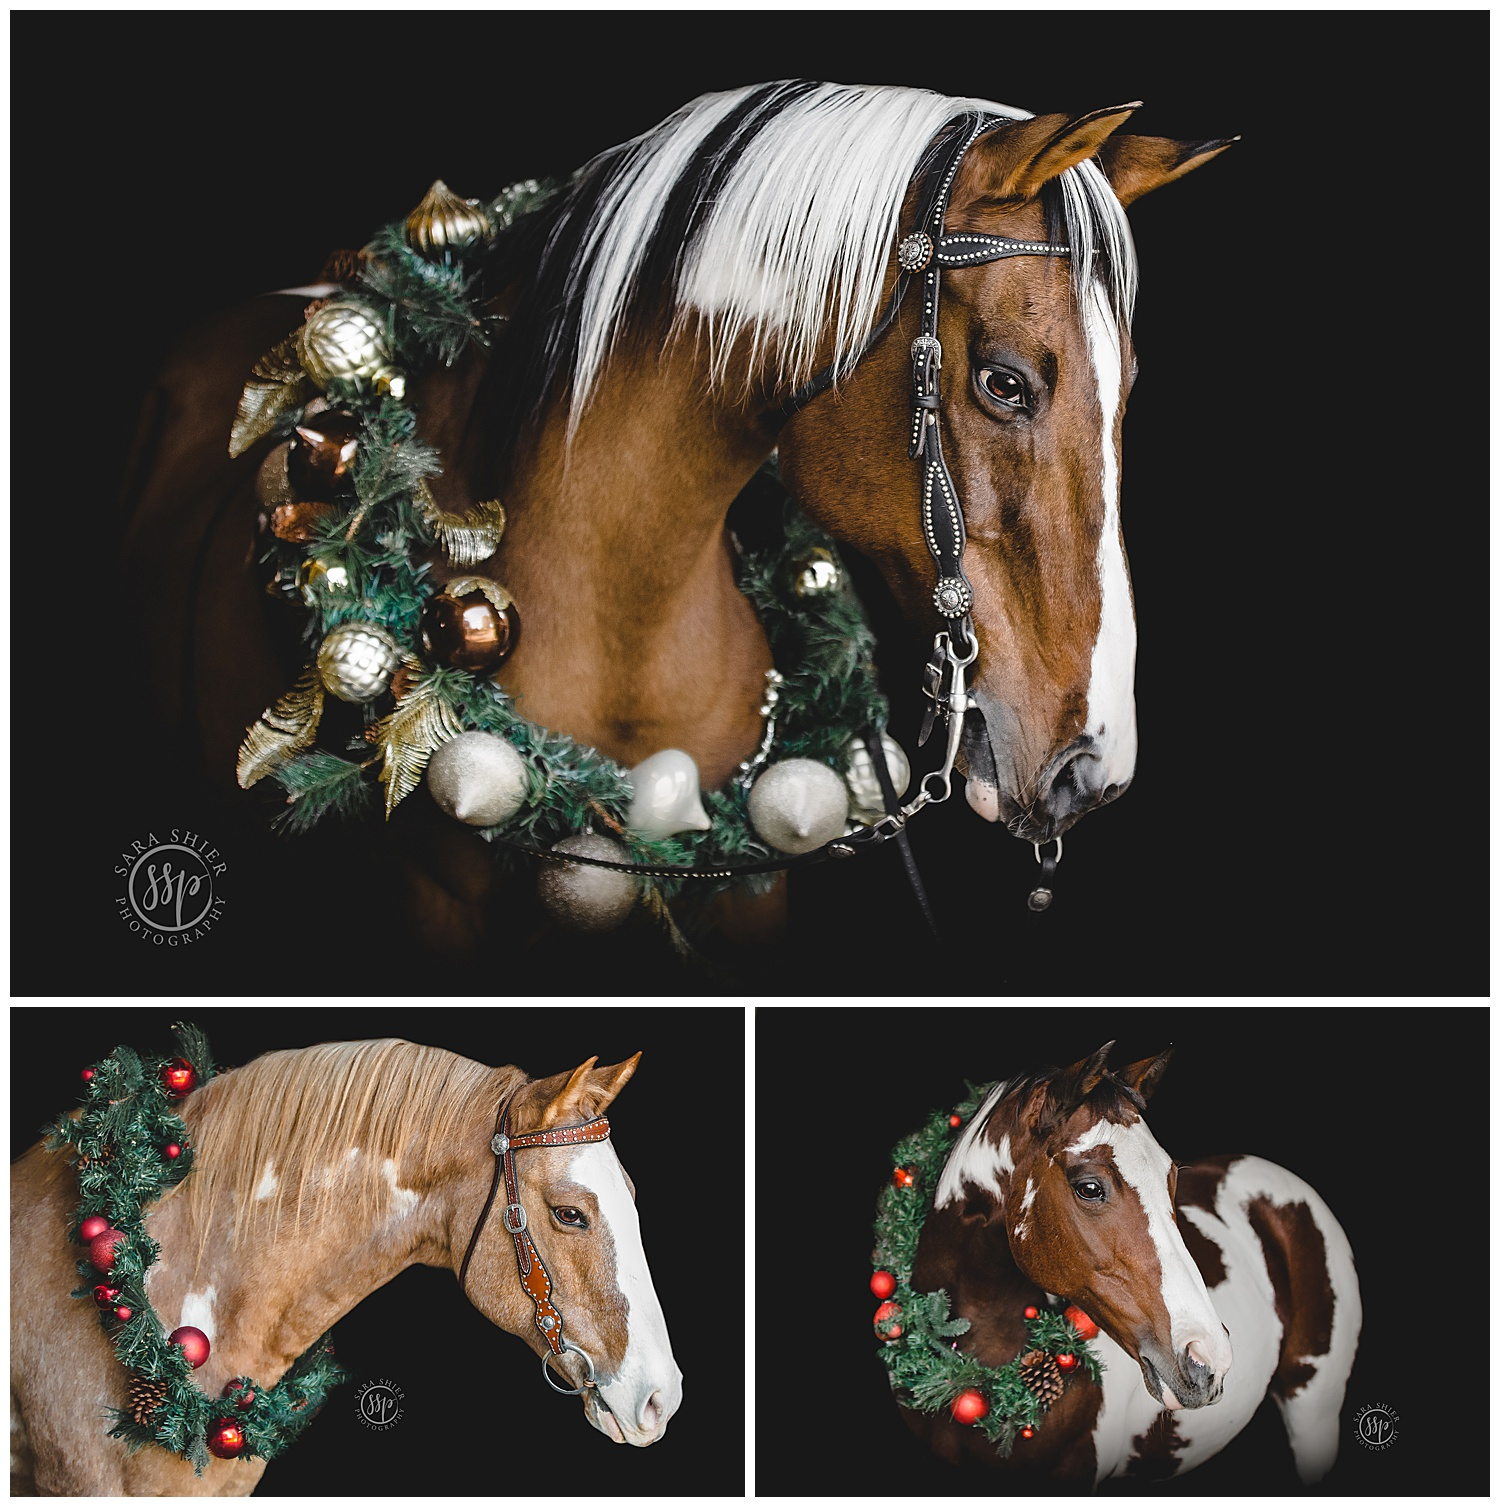 Black Background Horse Rider Equine Photographer Southern California Sara Shier Photography SoCal Equestrian Cowgirl_0159.jpg